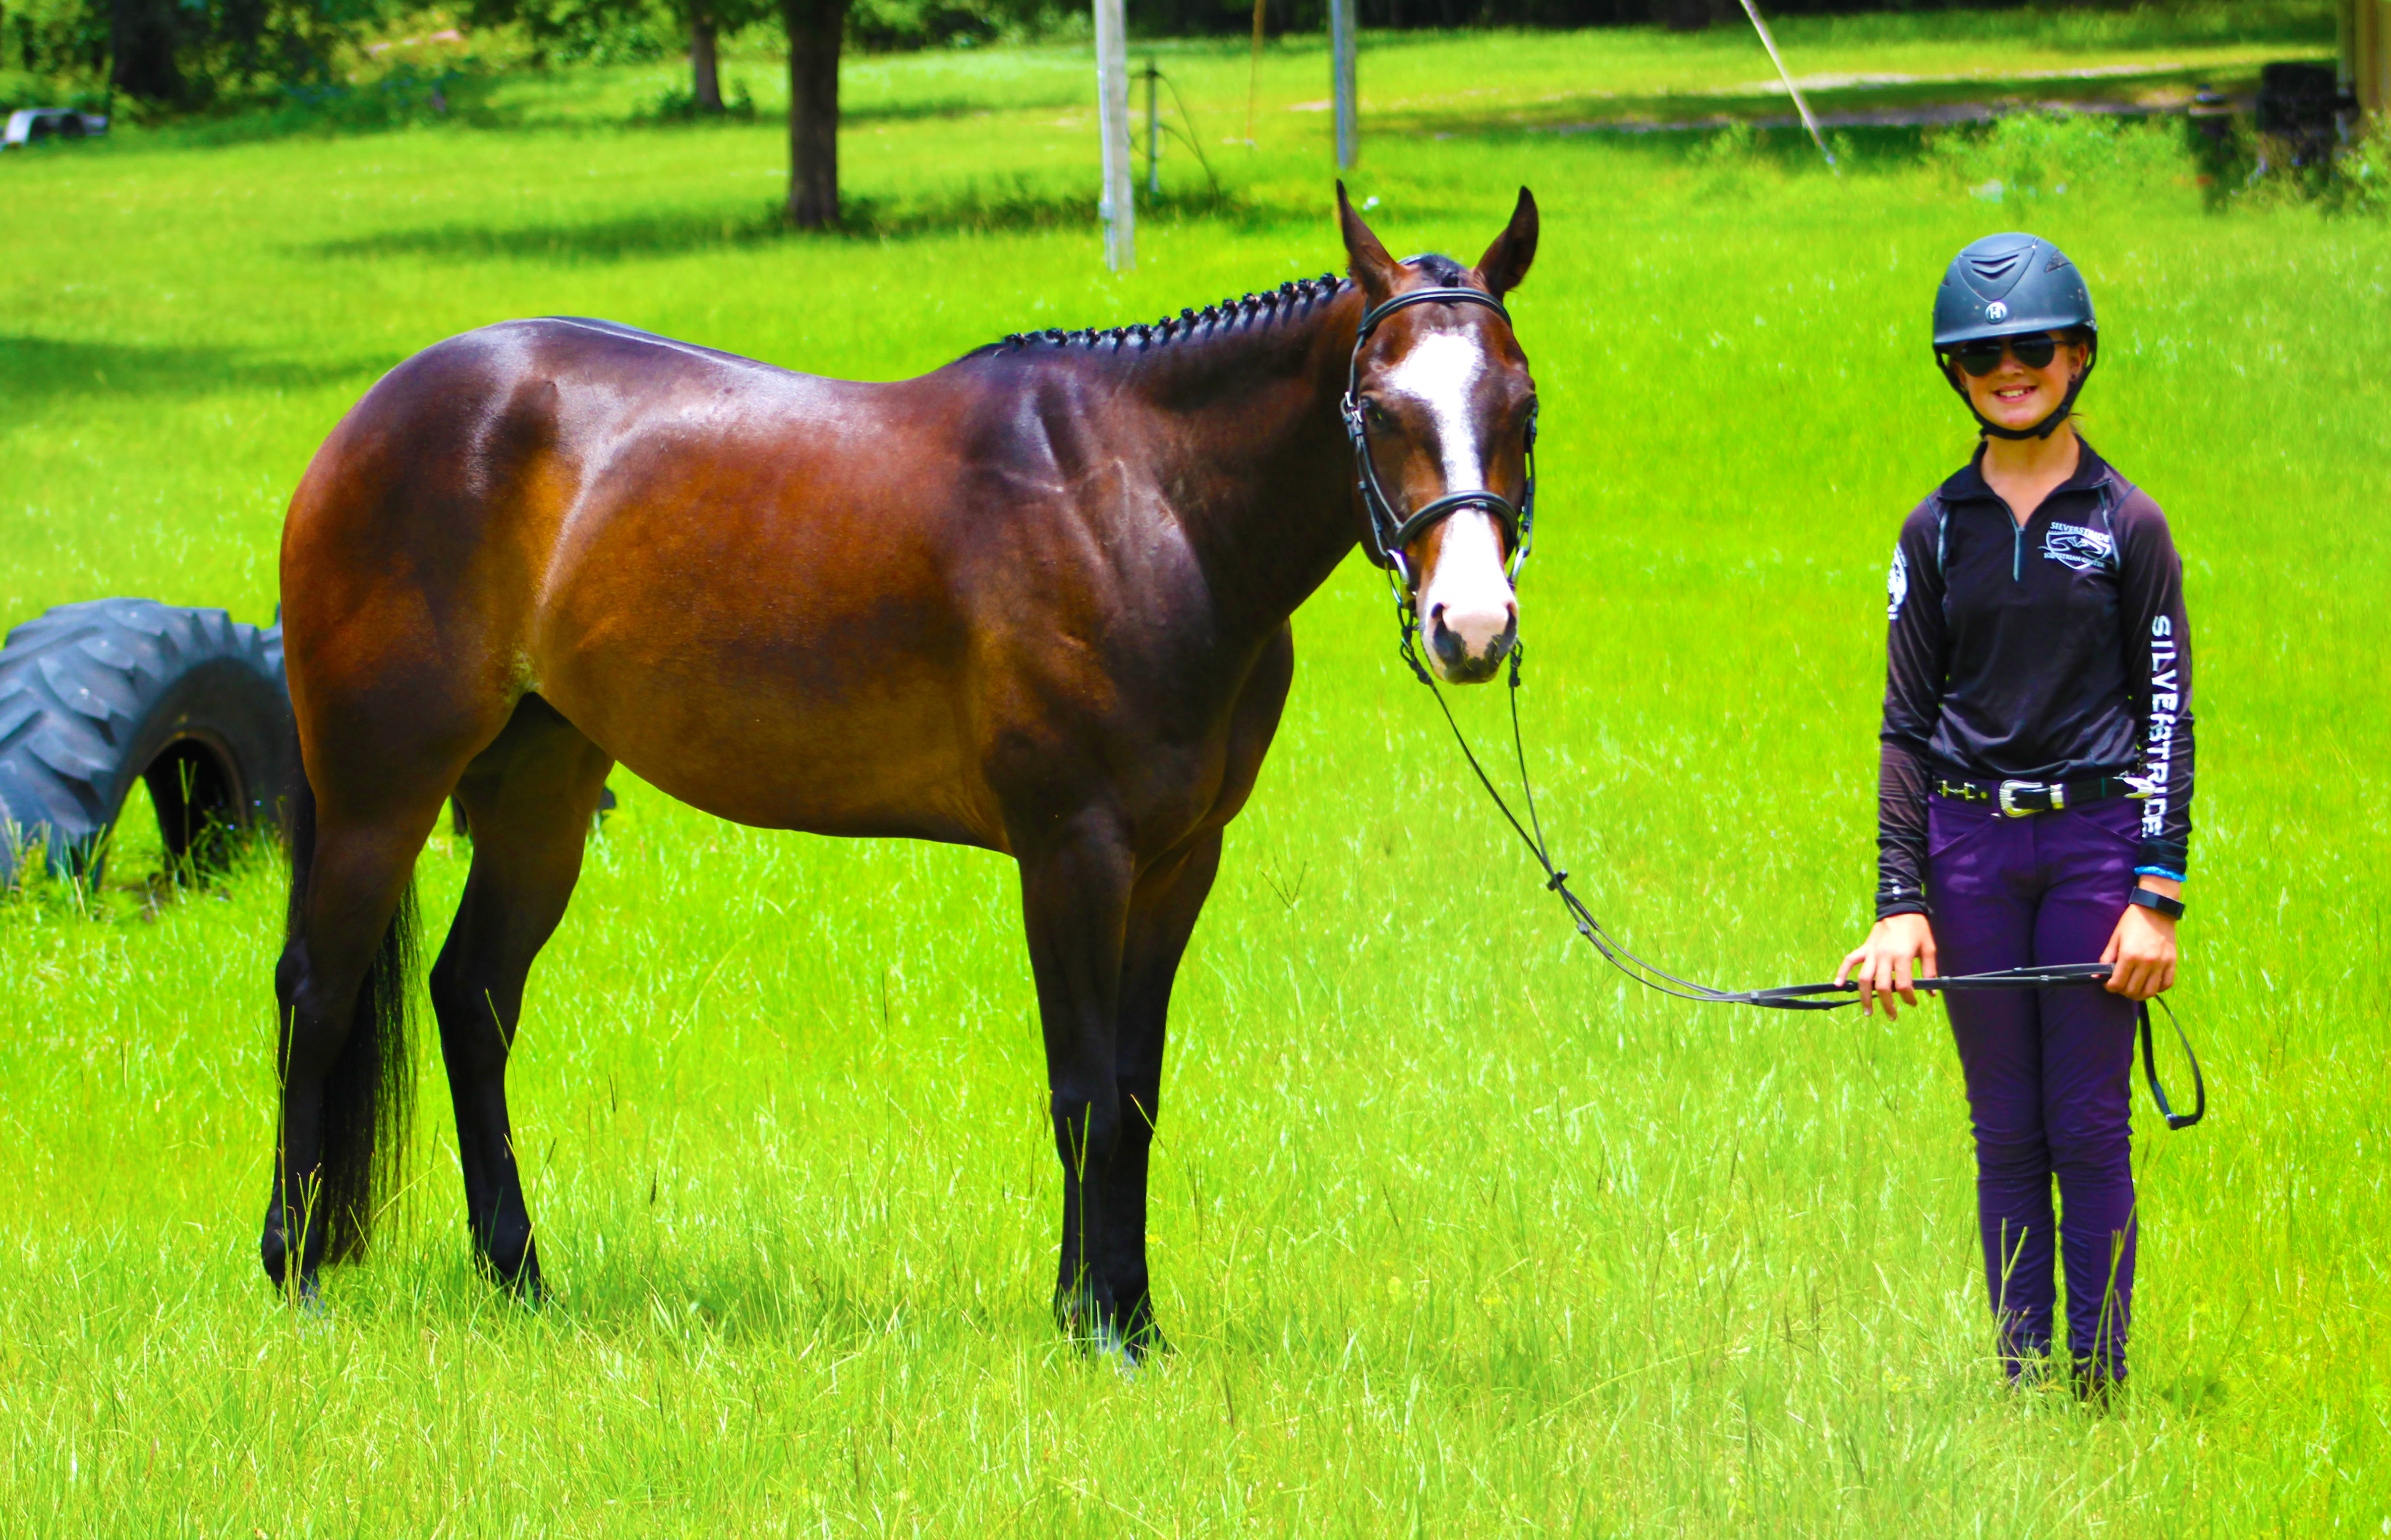 Horses For Sale Silverstride Equestrian Center